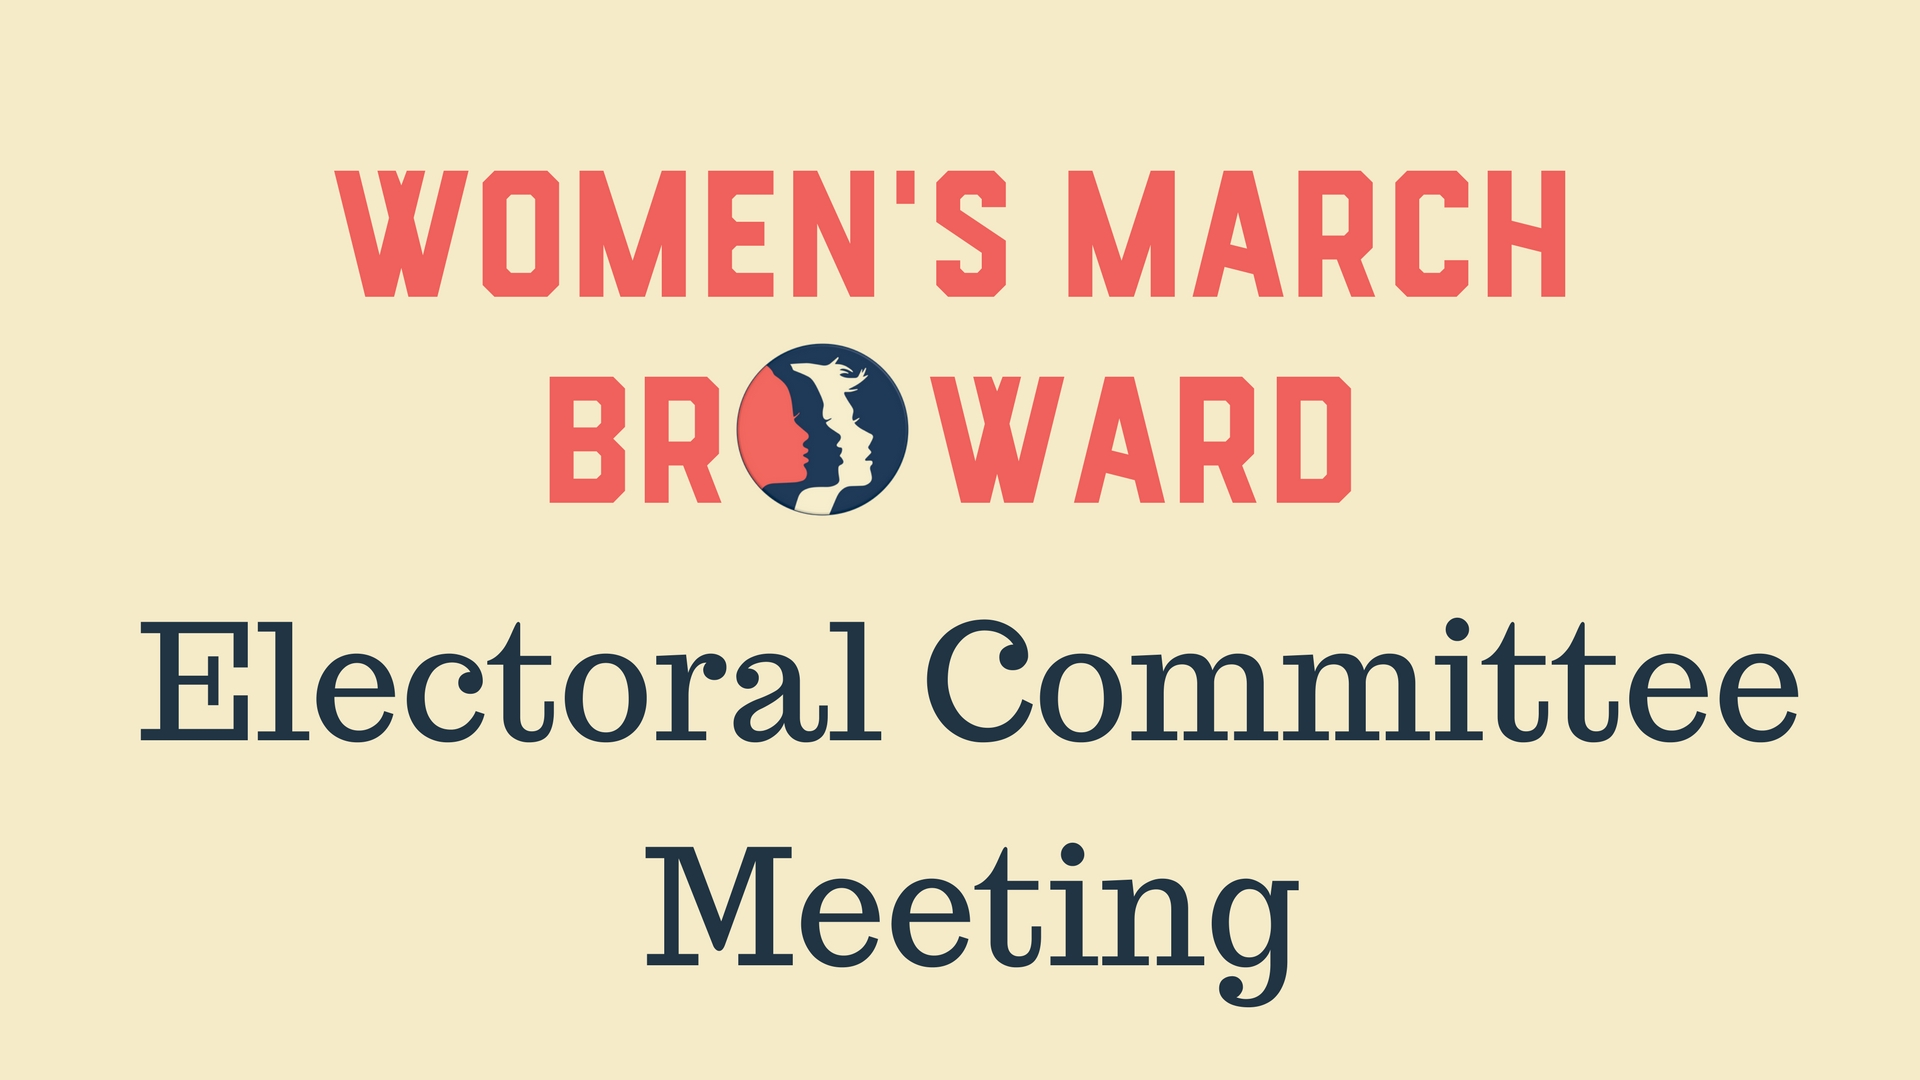 3-18-17: Electoral Committee Meeting - Location: Grind Coffee Project, 599 SW 2nd Avenue, Fort Lauderdale, FL 33301Time: 12:00 PMWe will be discussing the upcoming primaries for County, State, and National elections as well as discussing the objectives of the committee.